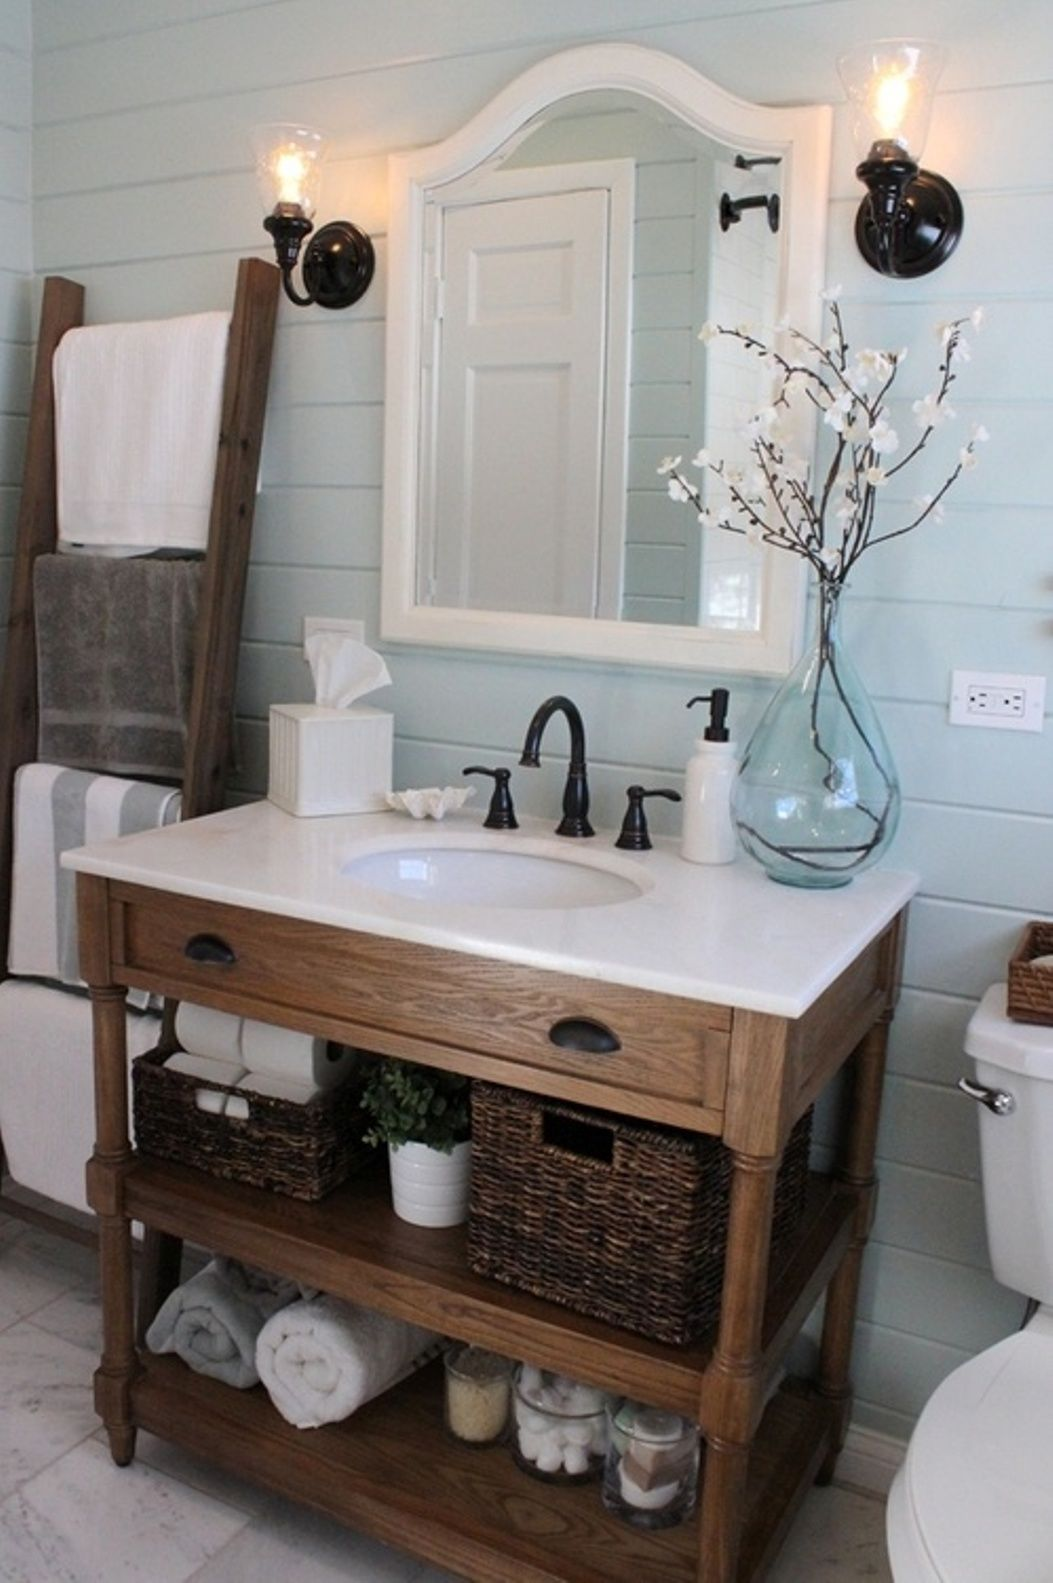 17 inspiring rustic bathroom decor ideas for cozy home for Bathroom decor uk